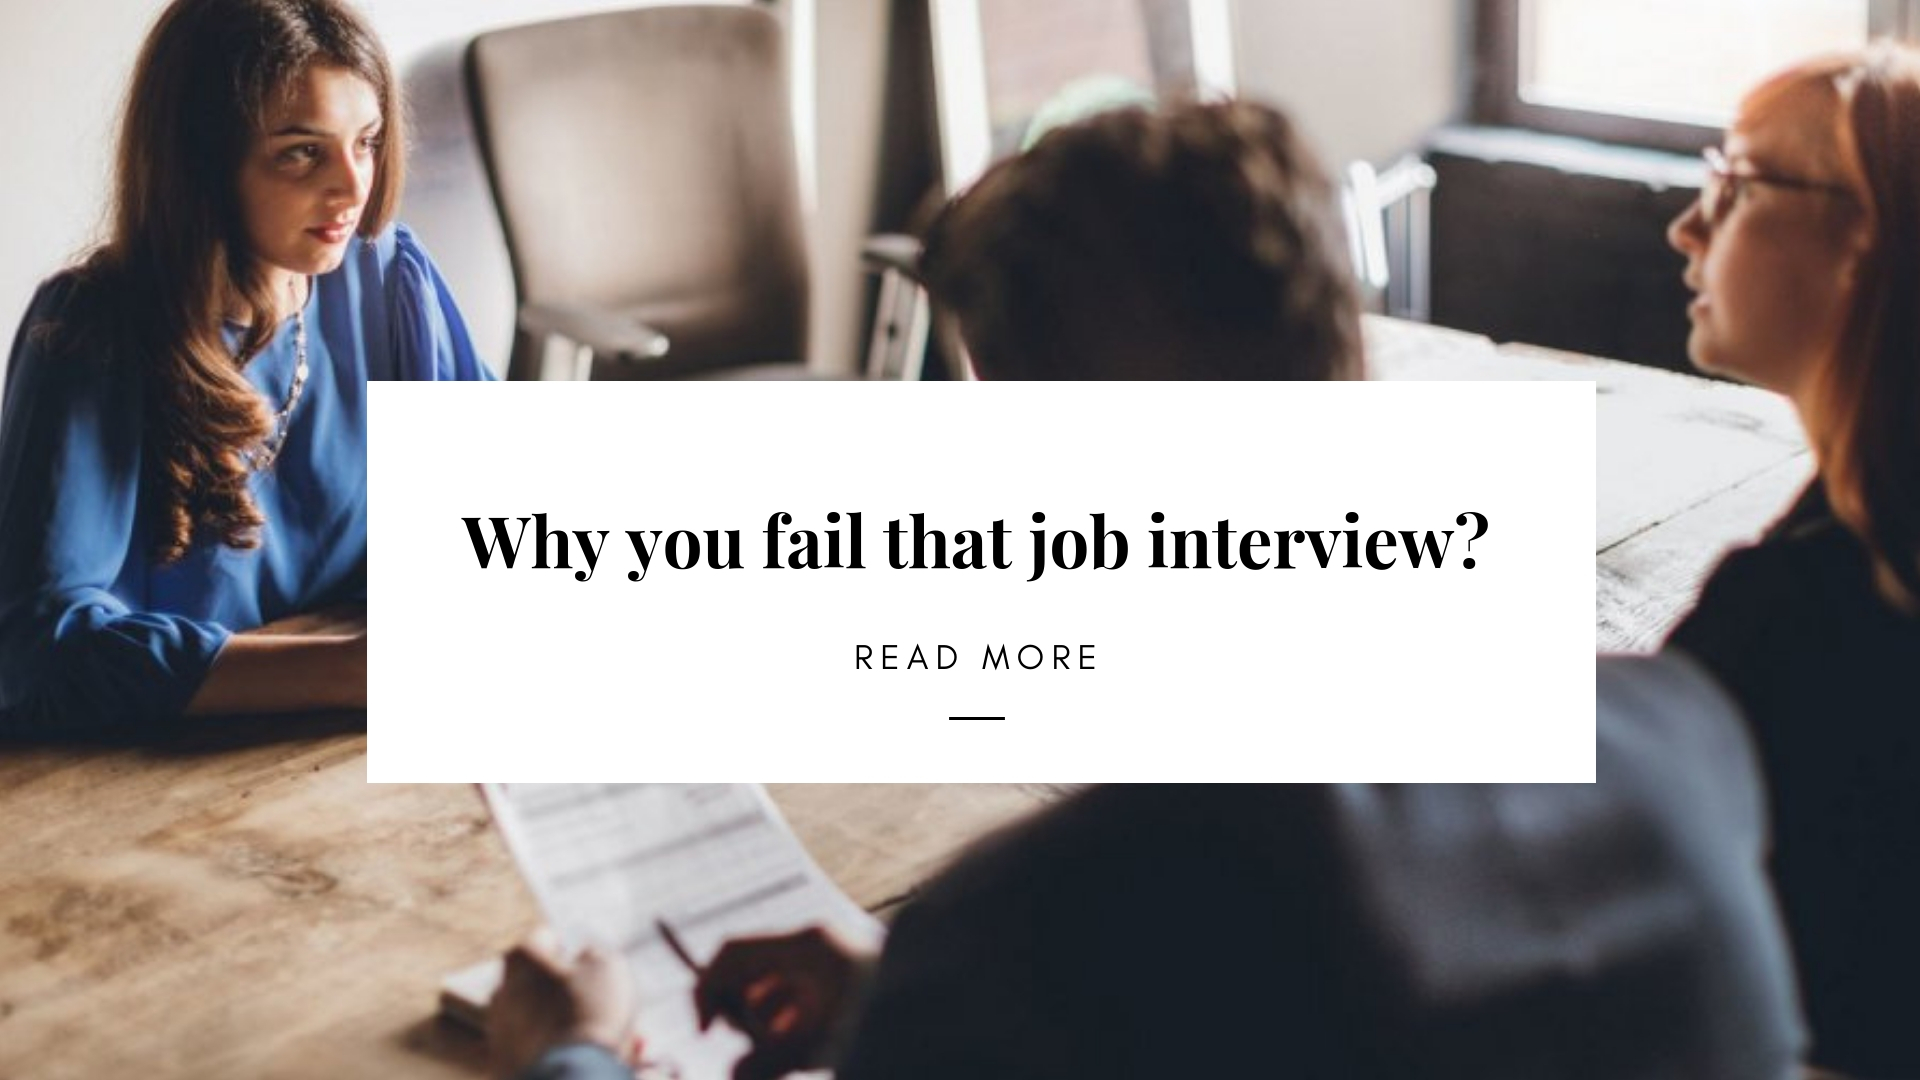 Why did you fall that job interview even when you're a qualified candidate? Things must have been easier if you know more carefully about the post you applied for, and how to express yourself more convincingly. So what are those mistakes and what can you do to avoid them?